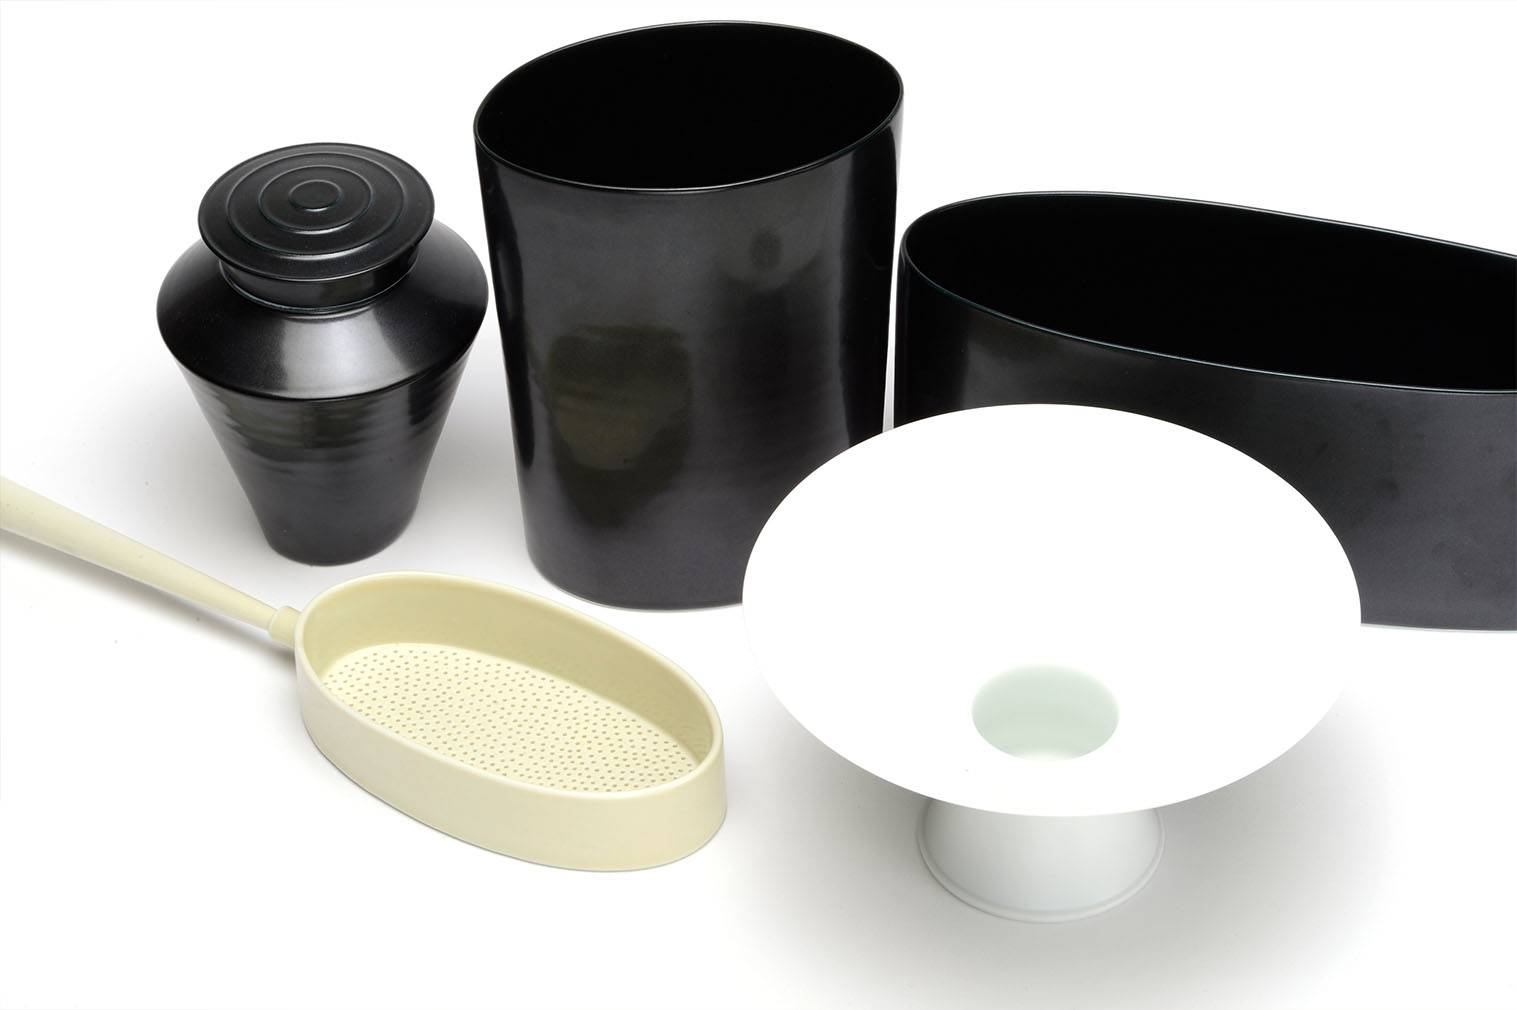 Porcelain black tea caddy, black oval forms, yellow sieve and white bowl.